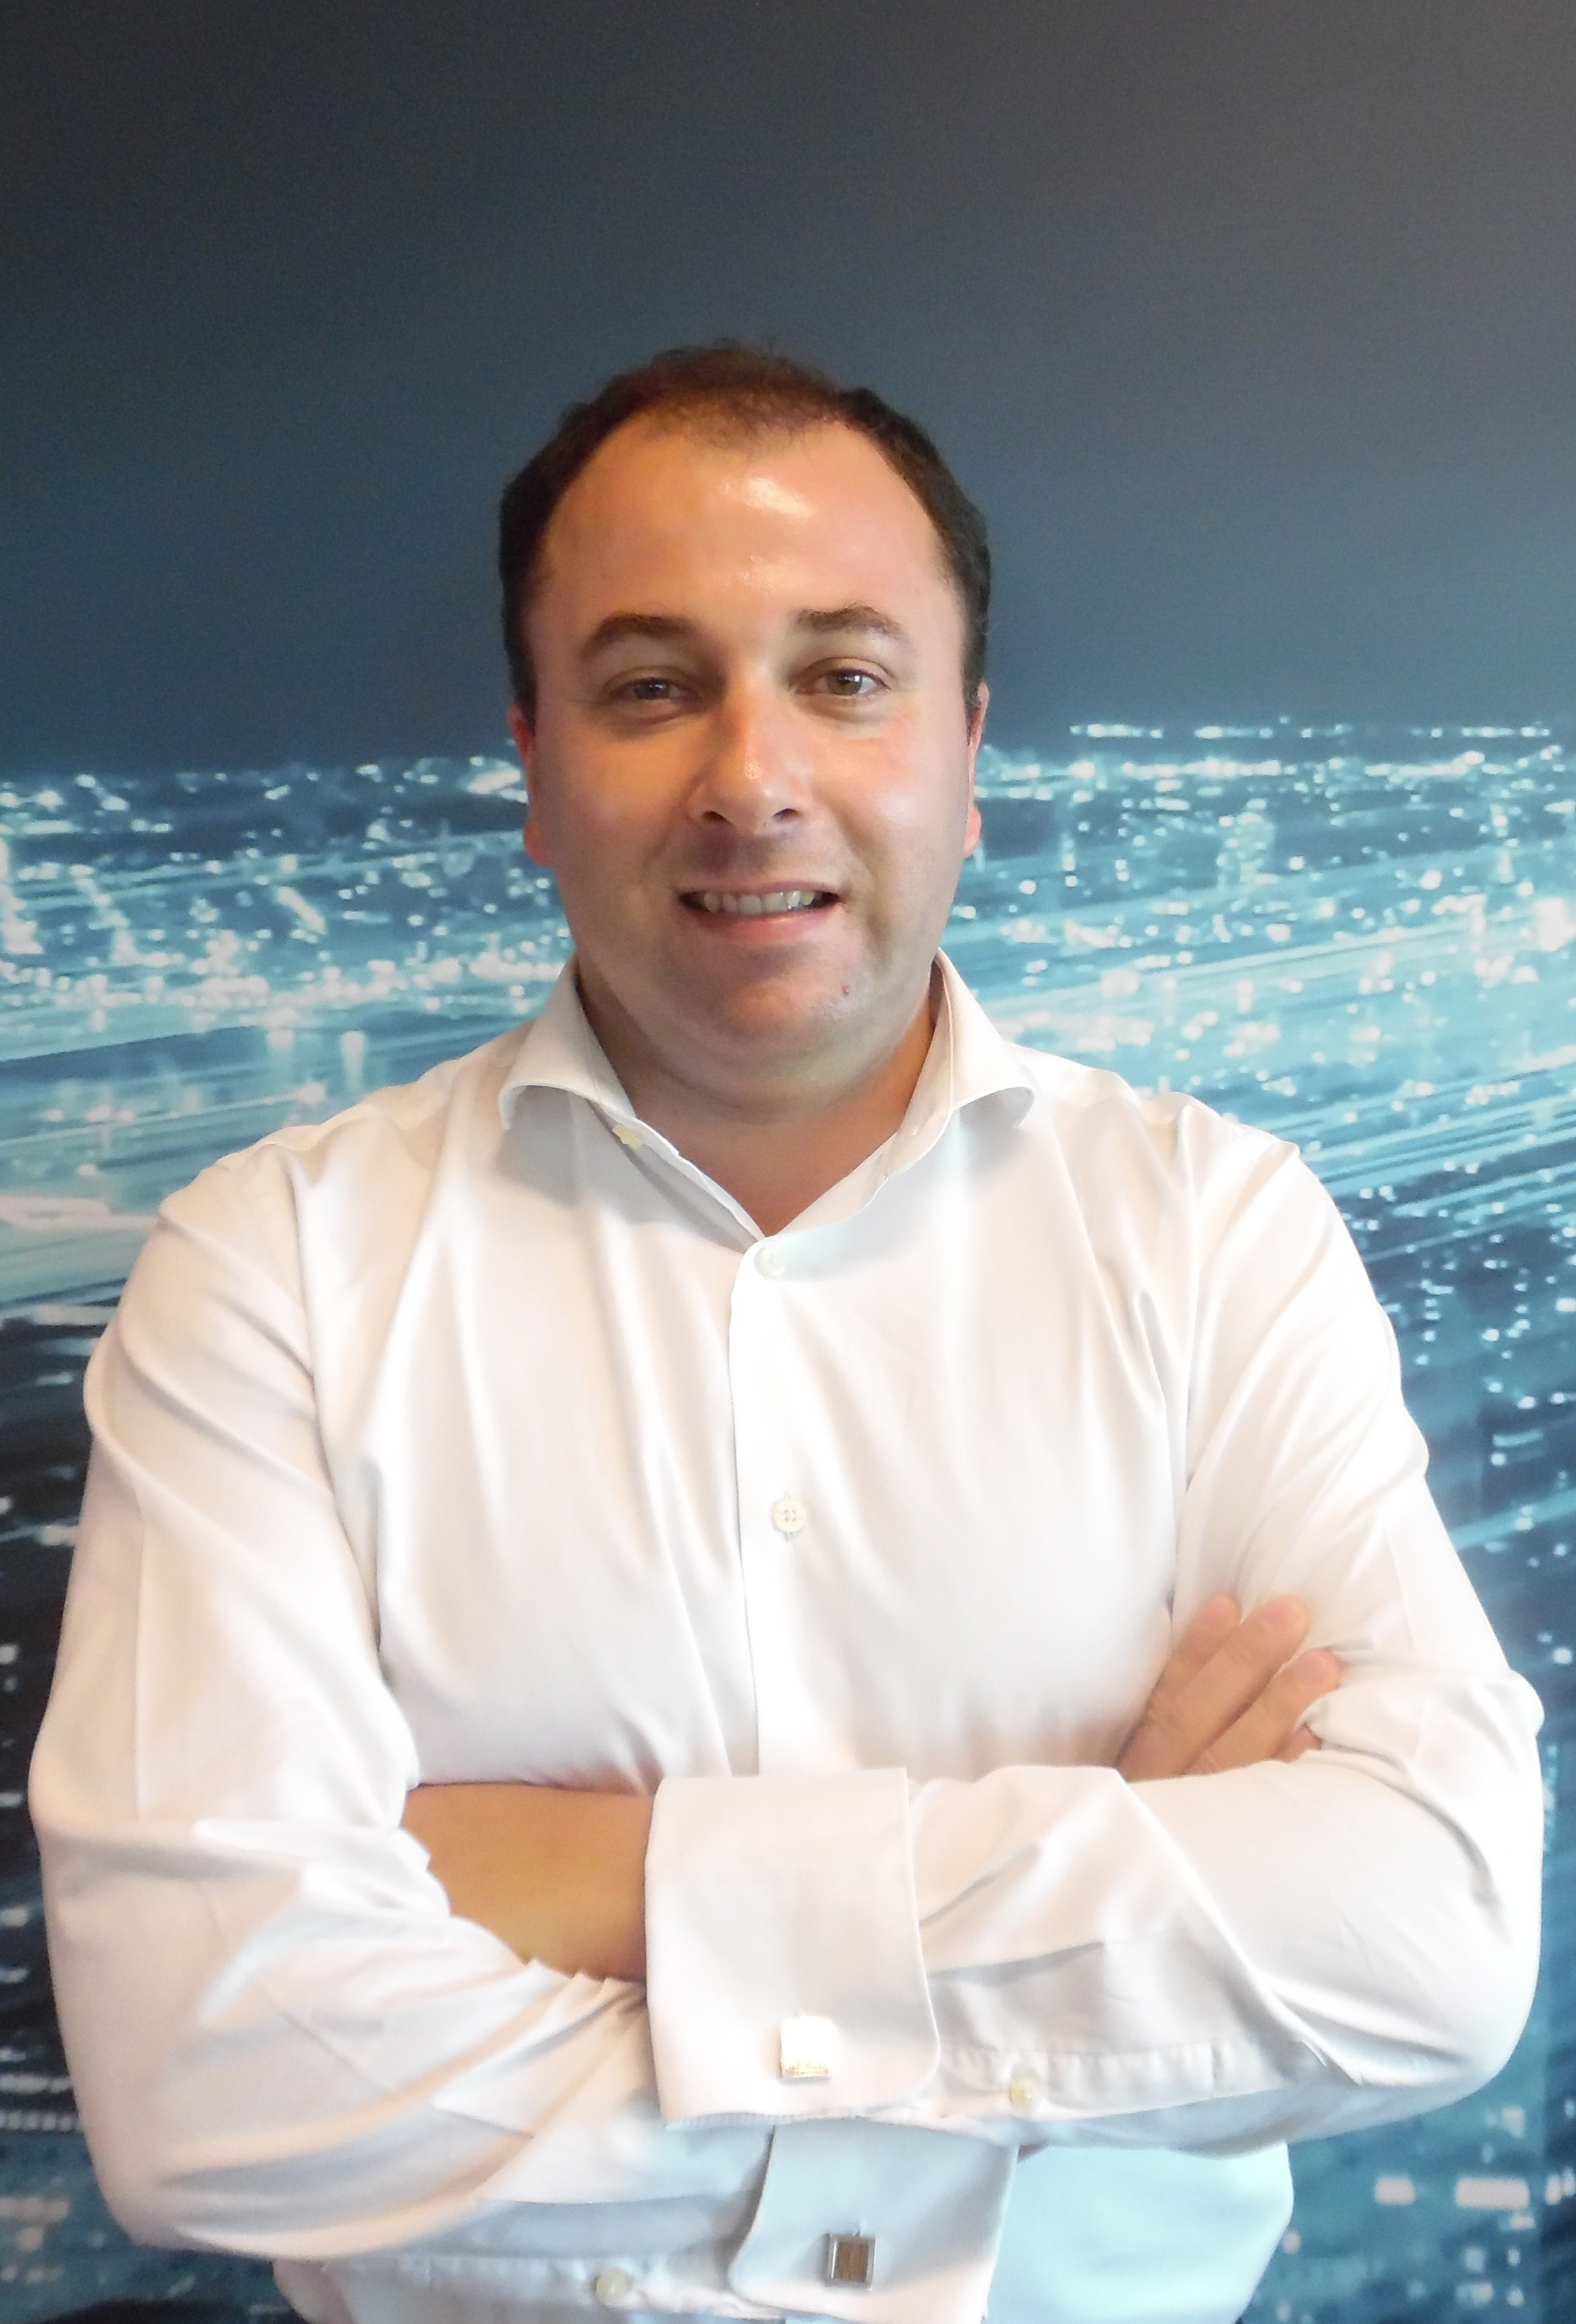 The Head of Advanced Solucions at Multicert, Nuno Ponte